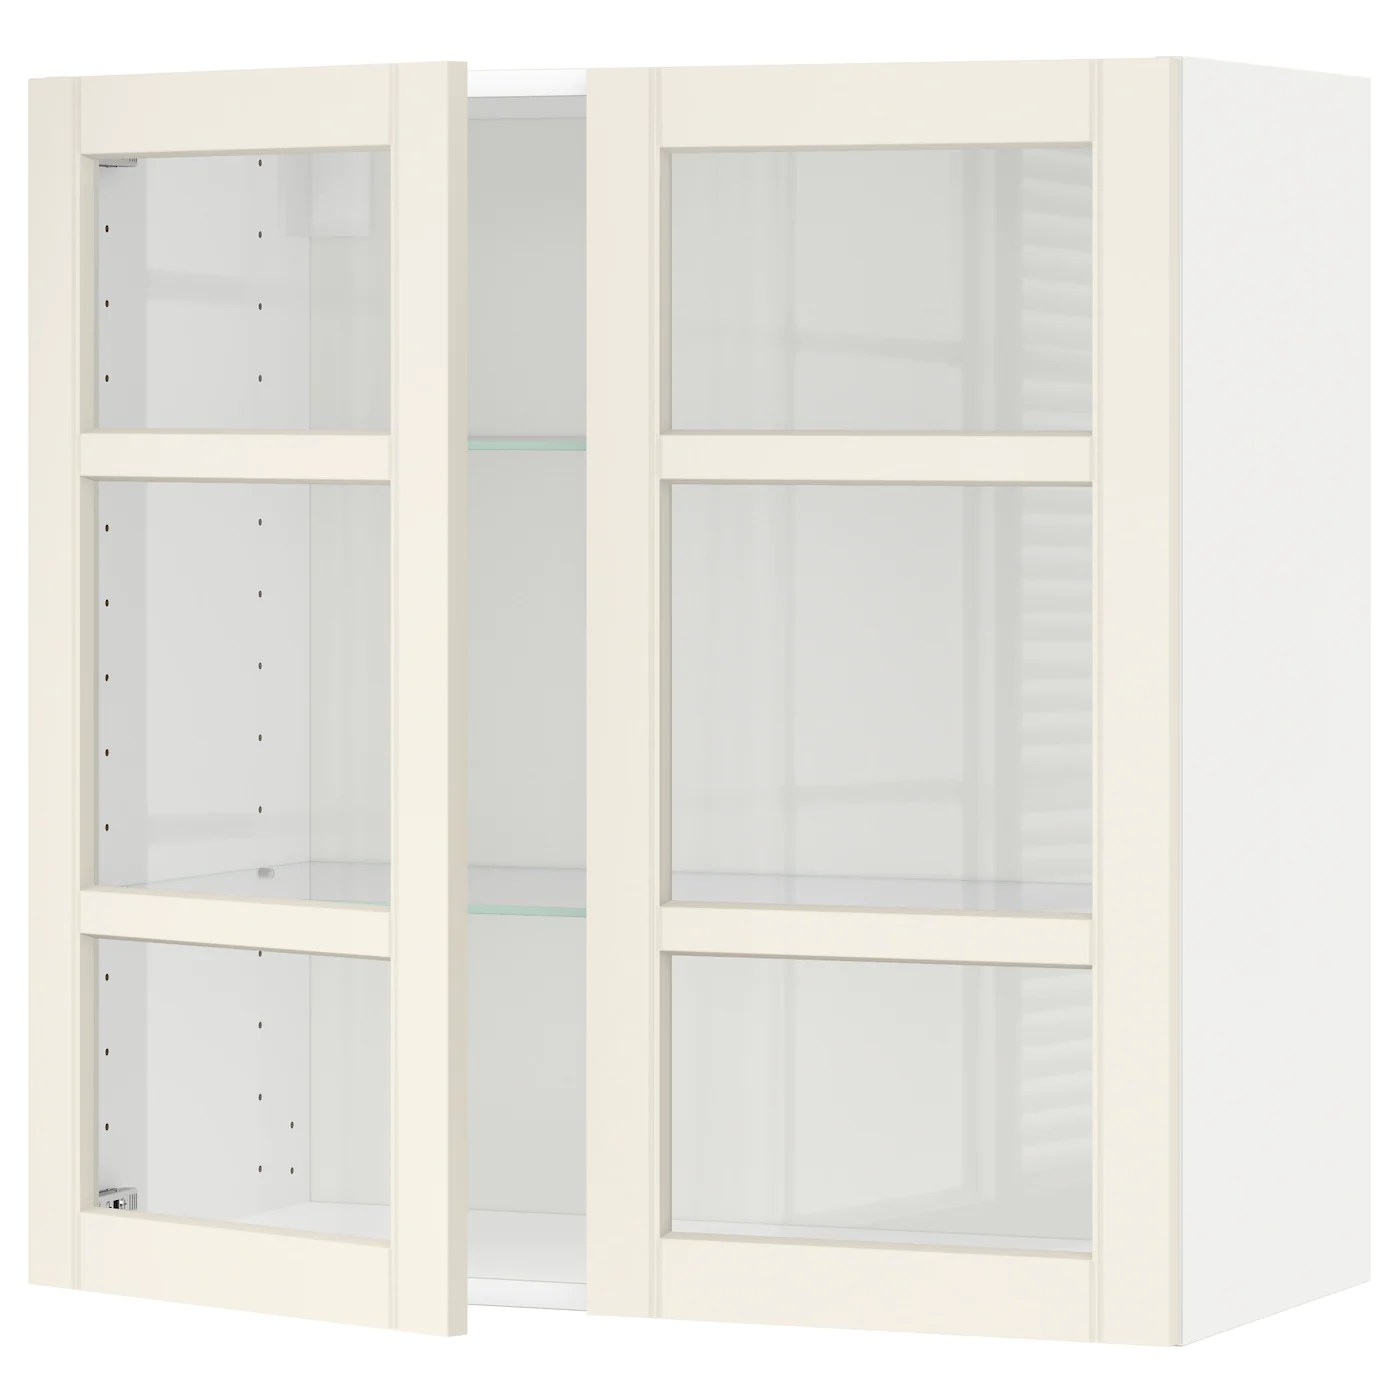 Metod Ikea Hängeschrank Metod Wall Cabinet W Shelves 2 Glass Drs White Hittarp Off White